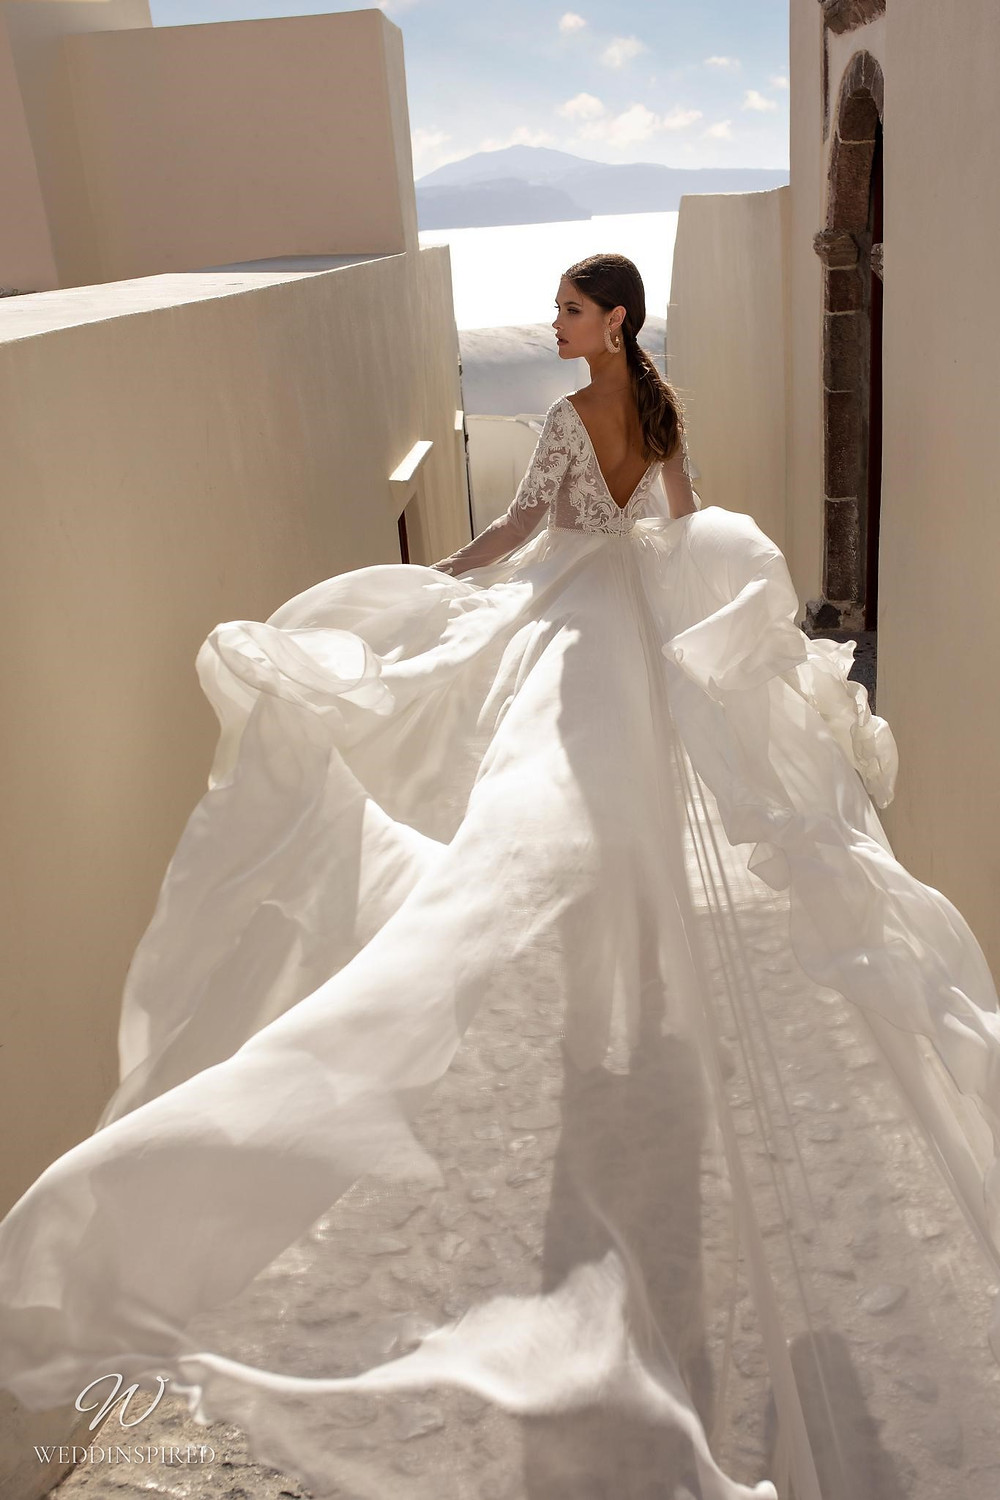 A Ricca Sposa soft flowy ball gown wedding dress with a lace top, long sleeves and a low back